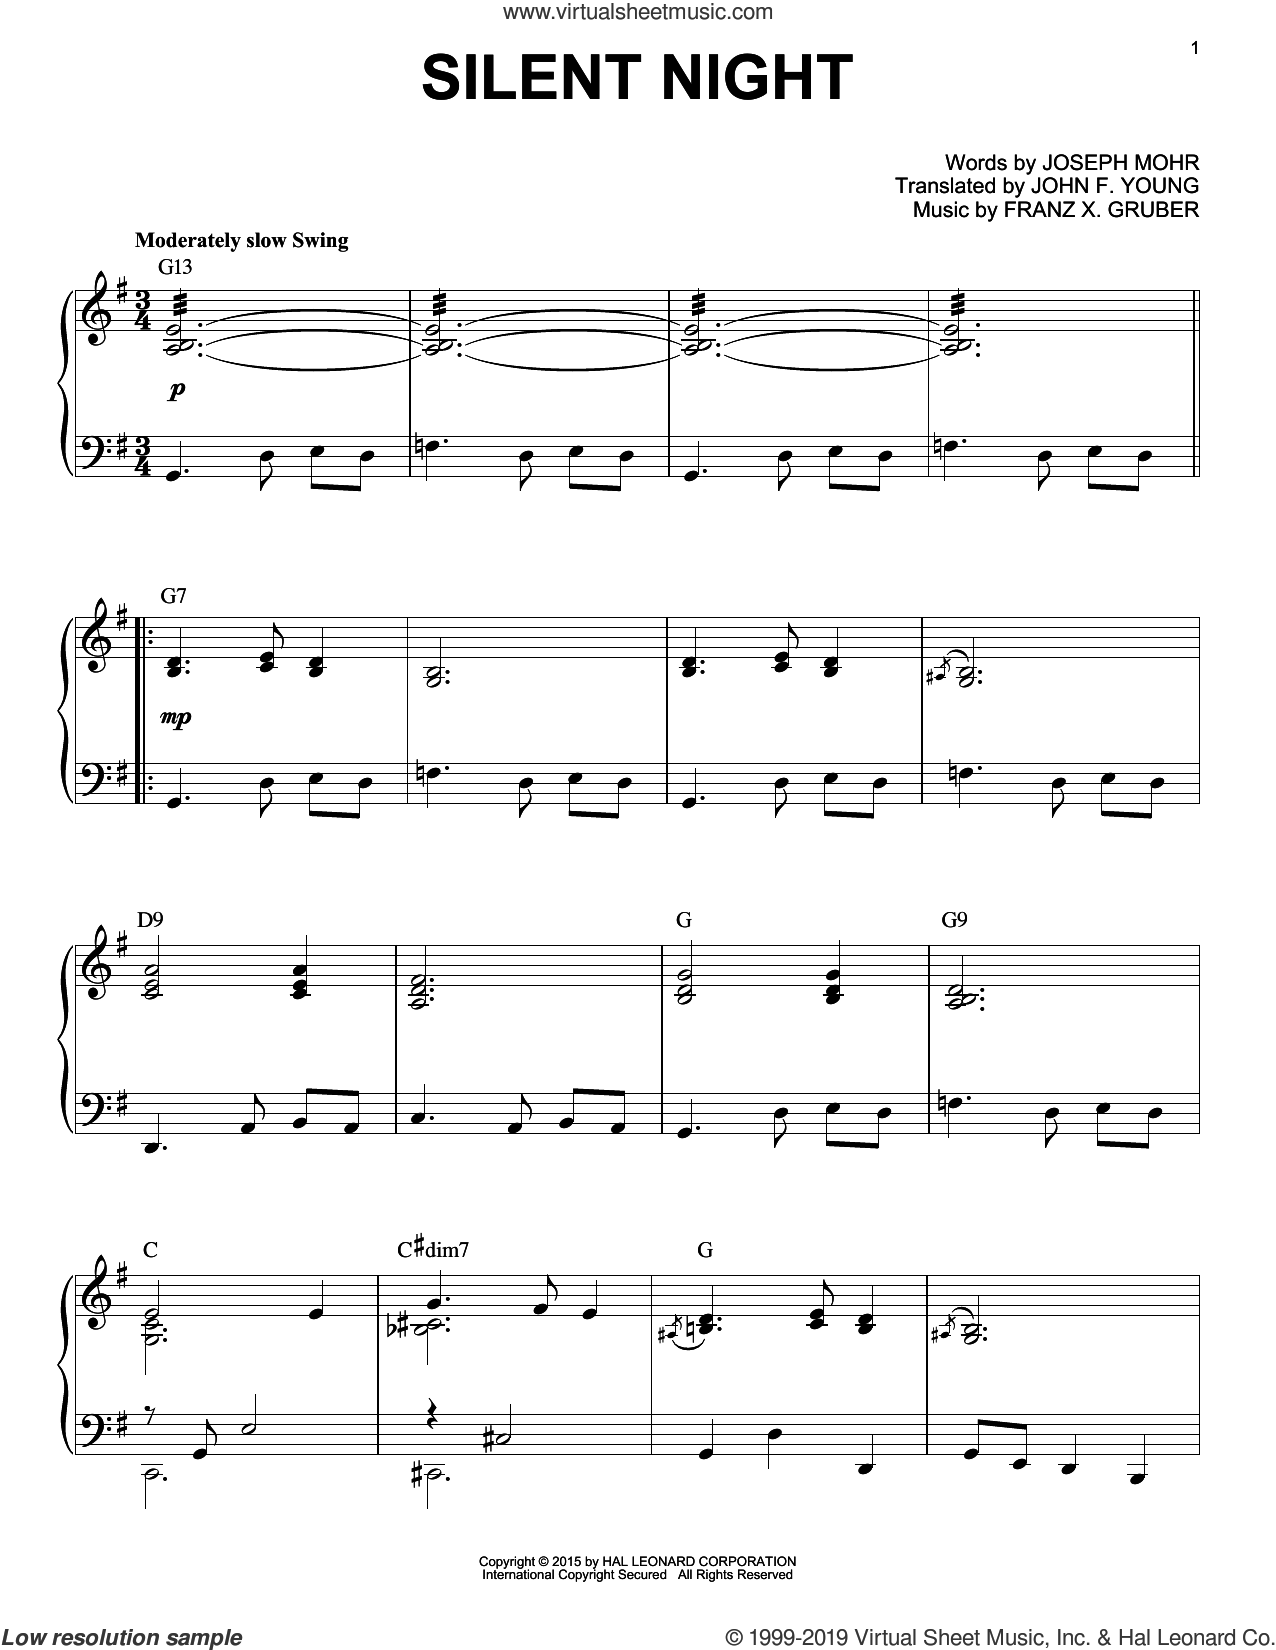 Silent Night [Jazz version] (arr. Brent Edstrom) sheet music for piano solo by Franz Gruber, Susan Boyle, John F. Young and Joseph Mohr, intermediate skill level